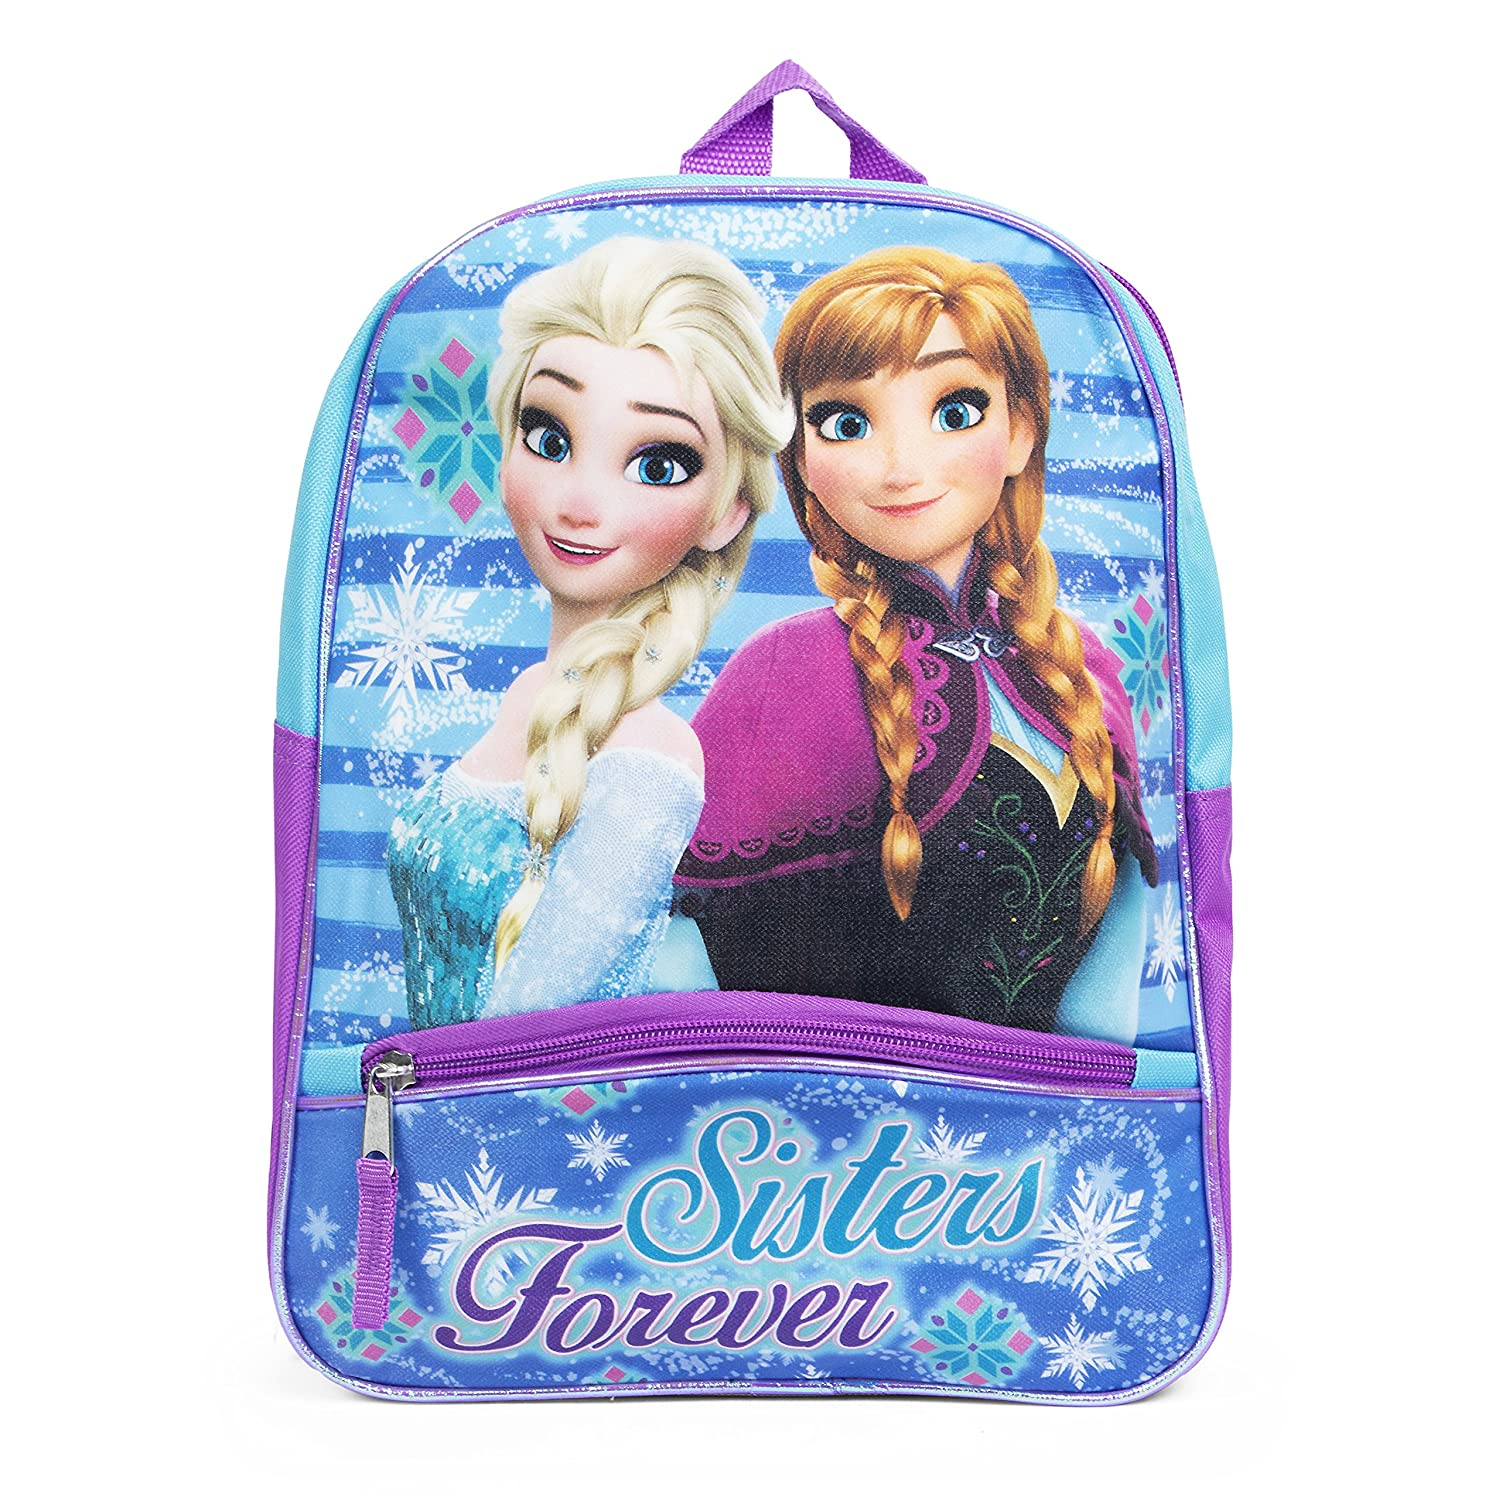 Disney Frozen Elsa and Anna Purple 12 Inch Toddler Backpack